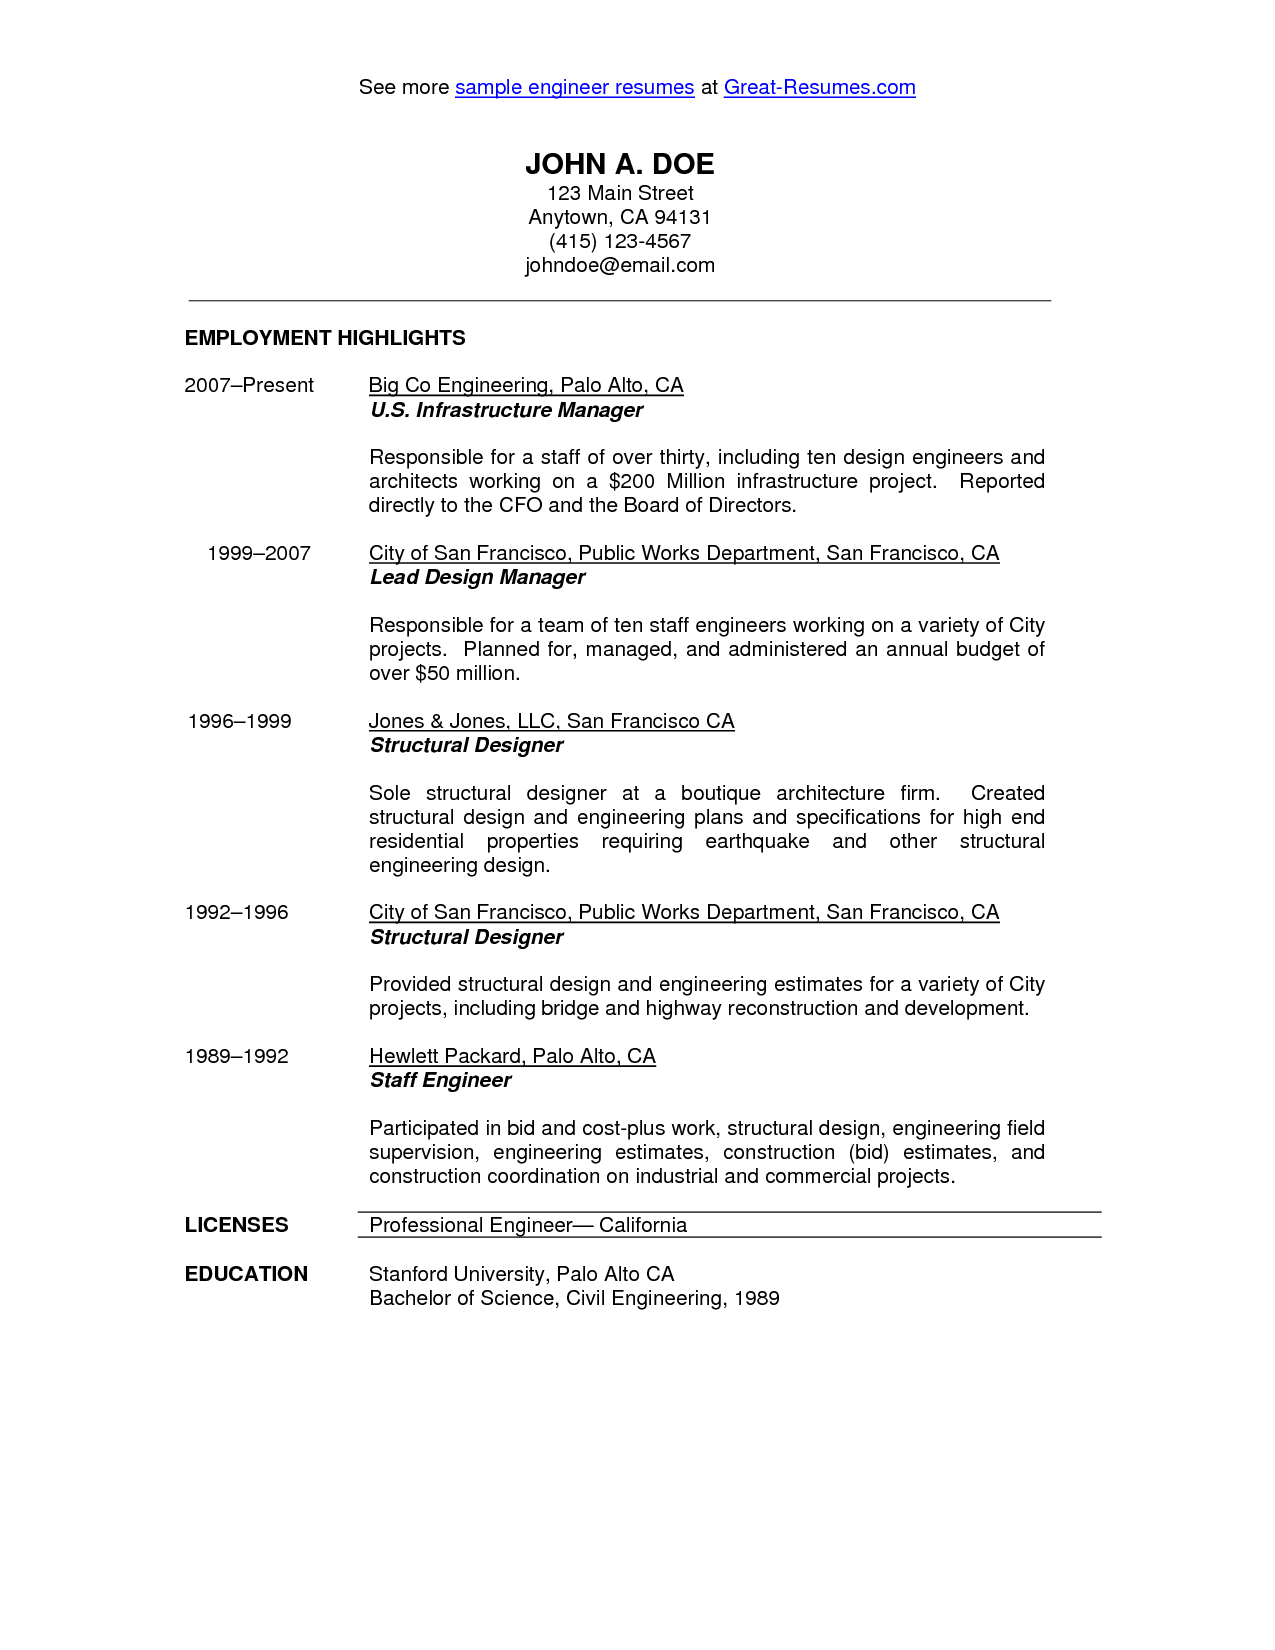 Resume Education Example Pleasing Civil Engineer Resume Sample  Httpwwwresumecareercivil Design Ideas